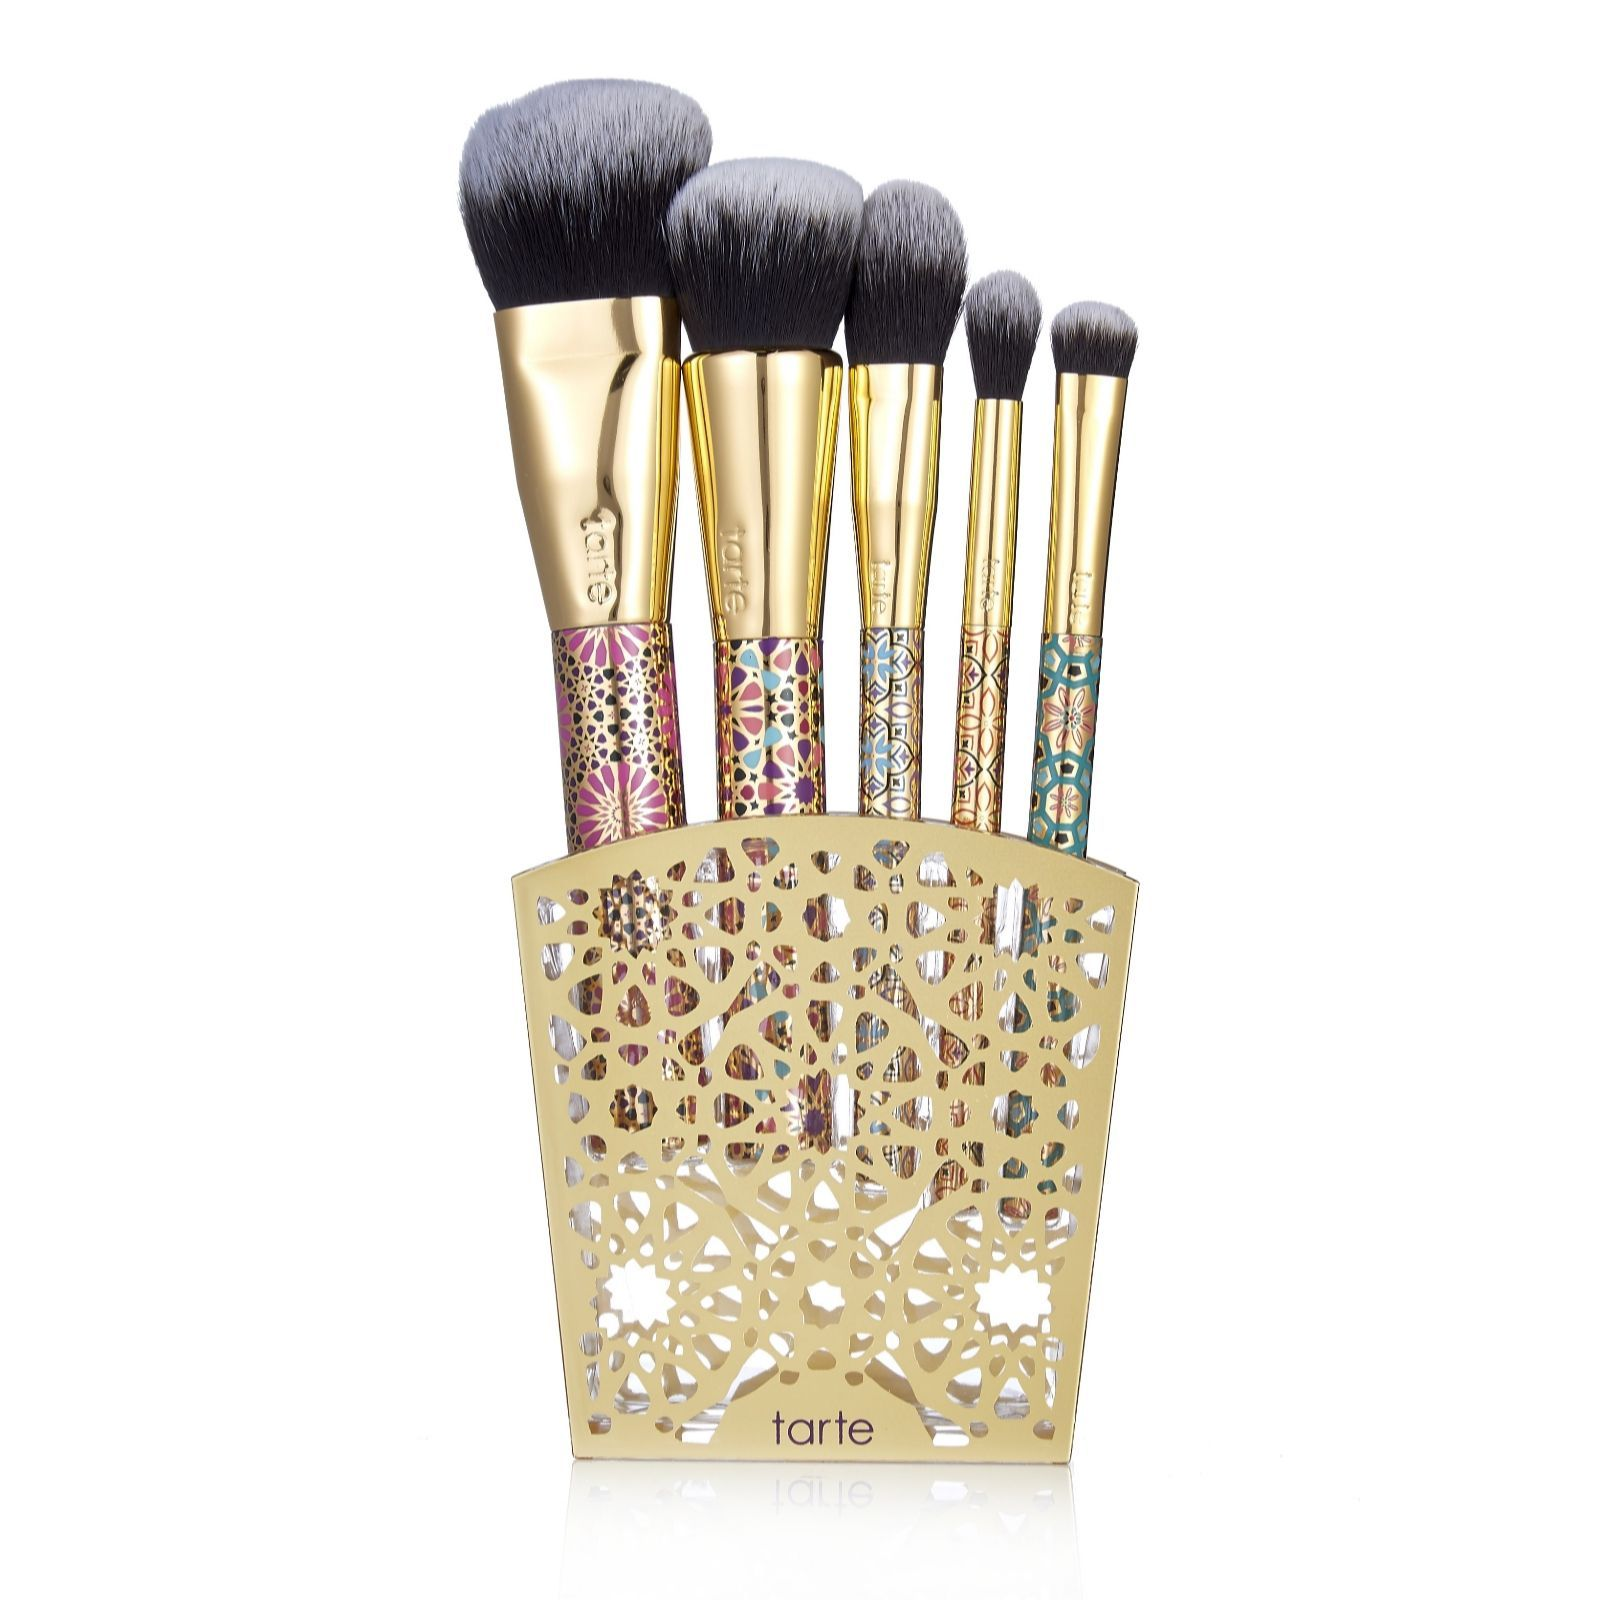 Tarte 5 Piece Limited Edition Brush Collection QVC UK